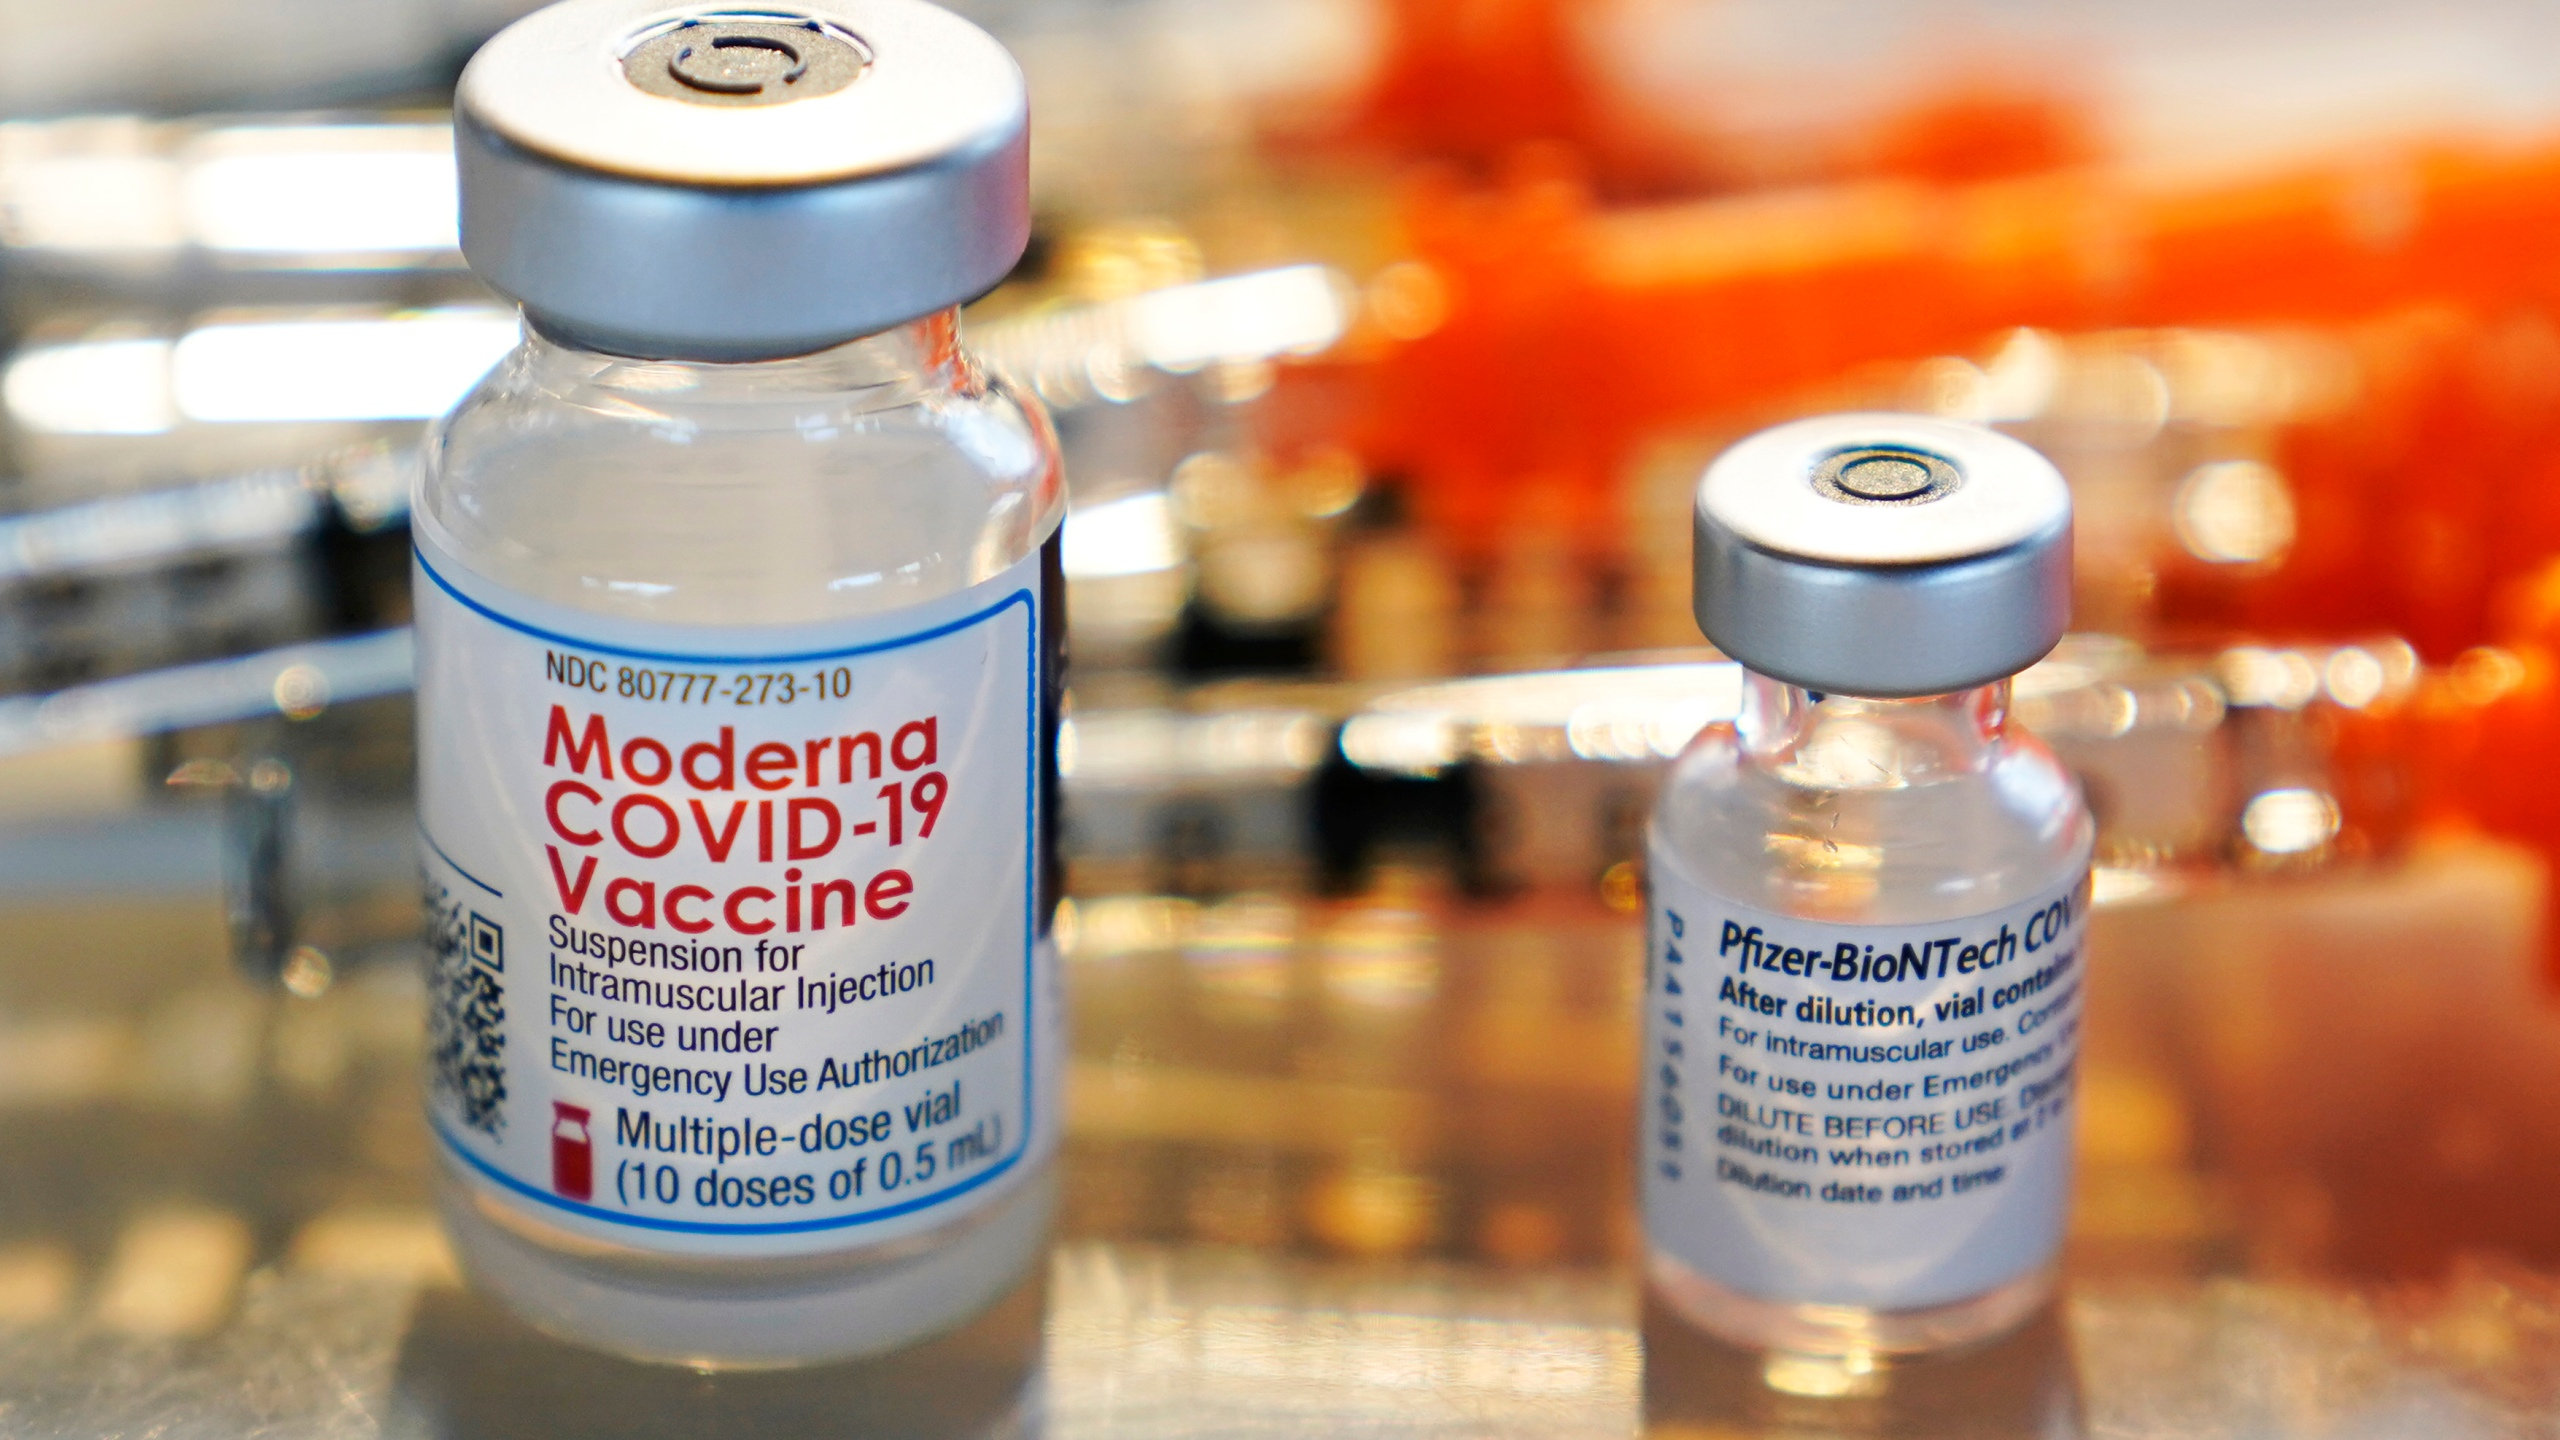 This Thursday, Feb. 25, 2021 file photo shows vials for the Moderna and Pfizer COVID-19 vaccines. (AP Photo/Charles Krupa)